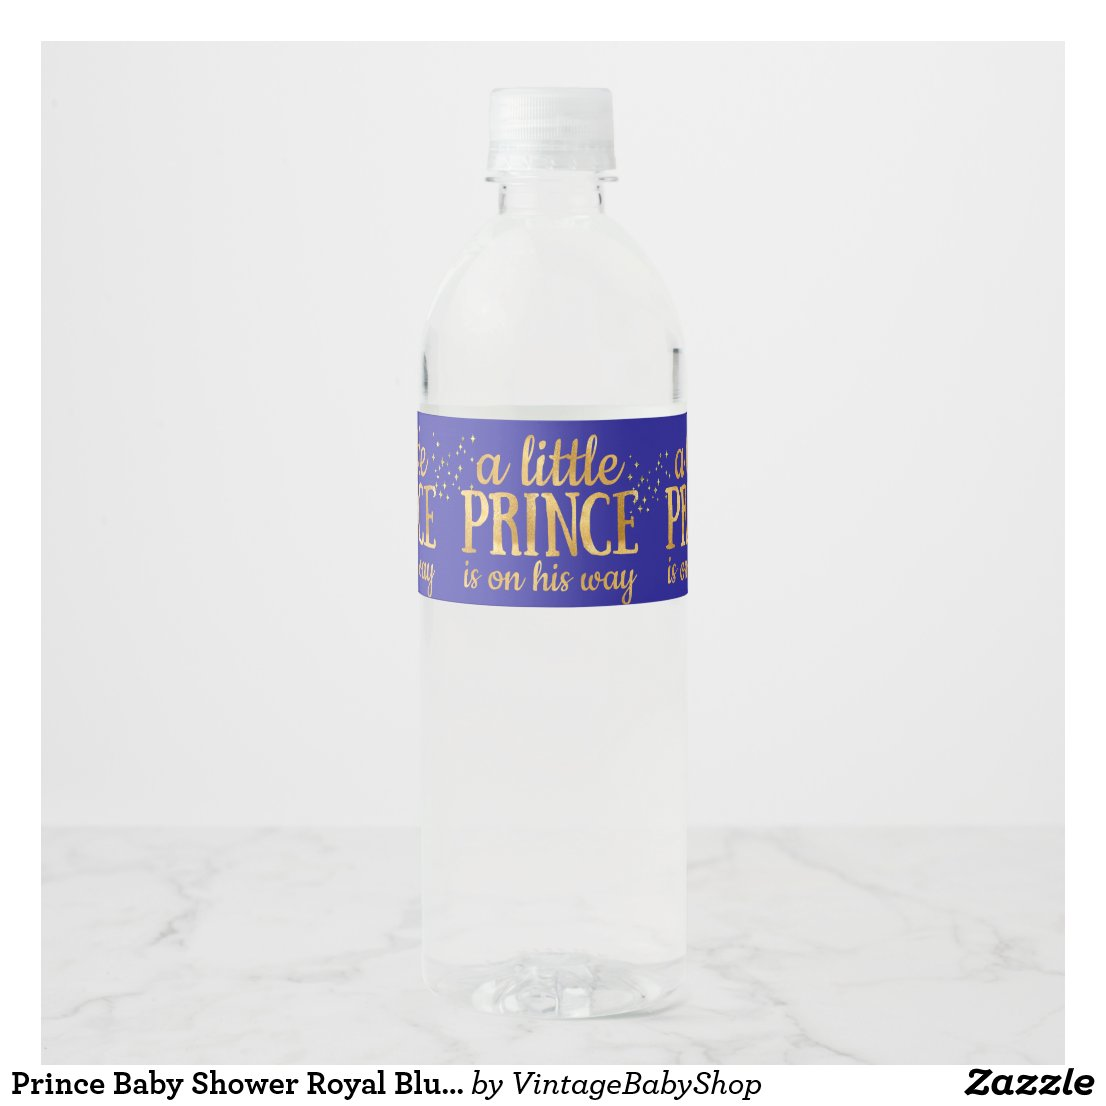 Prince Baby Shower Royal Blue Gold Foil Boy